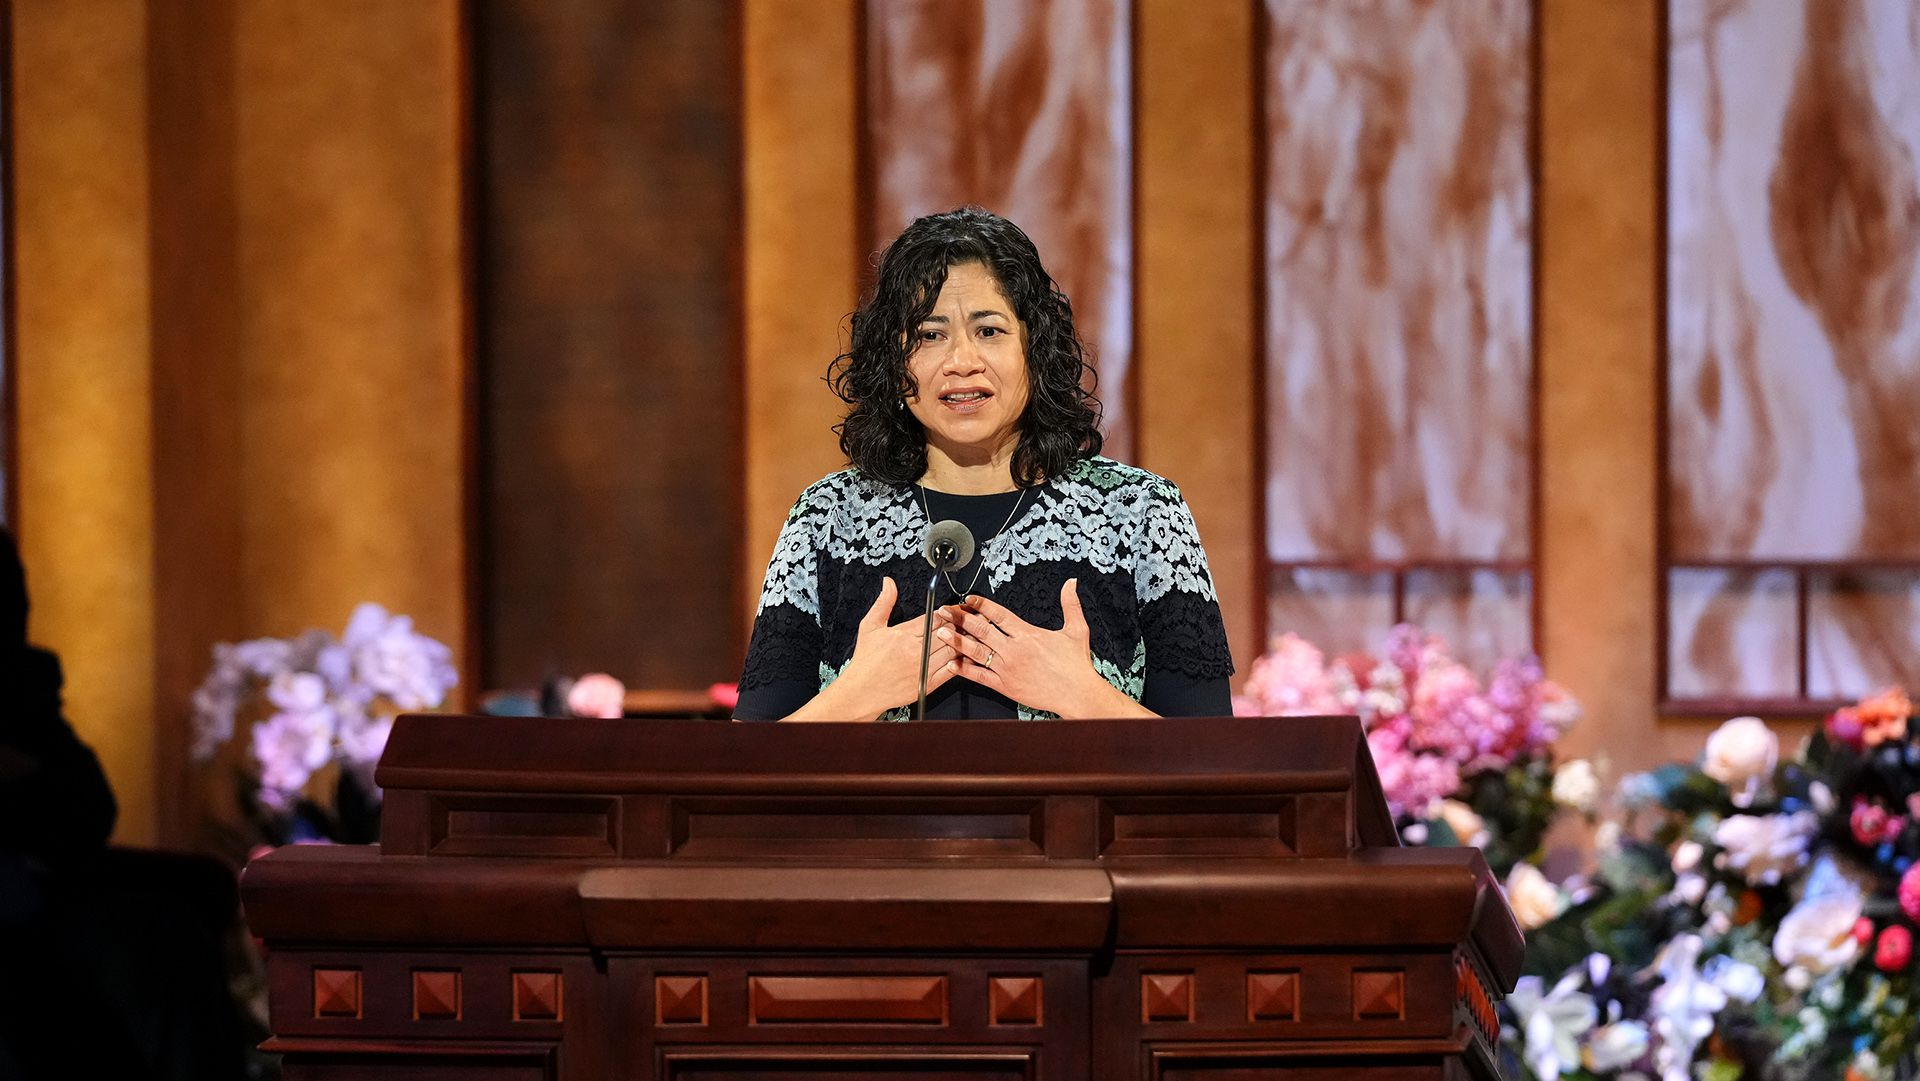 (Photo courtesy of The Church Jesus Christ of Latter-day Saints) Reyna I. Aburto, second counselor in the Relief Society general presidency, speaks at General Conference on Easter Sunday, April 4, 2021.